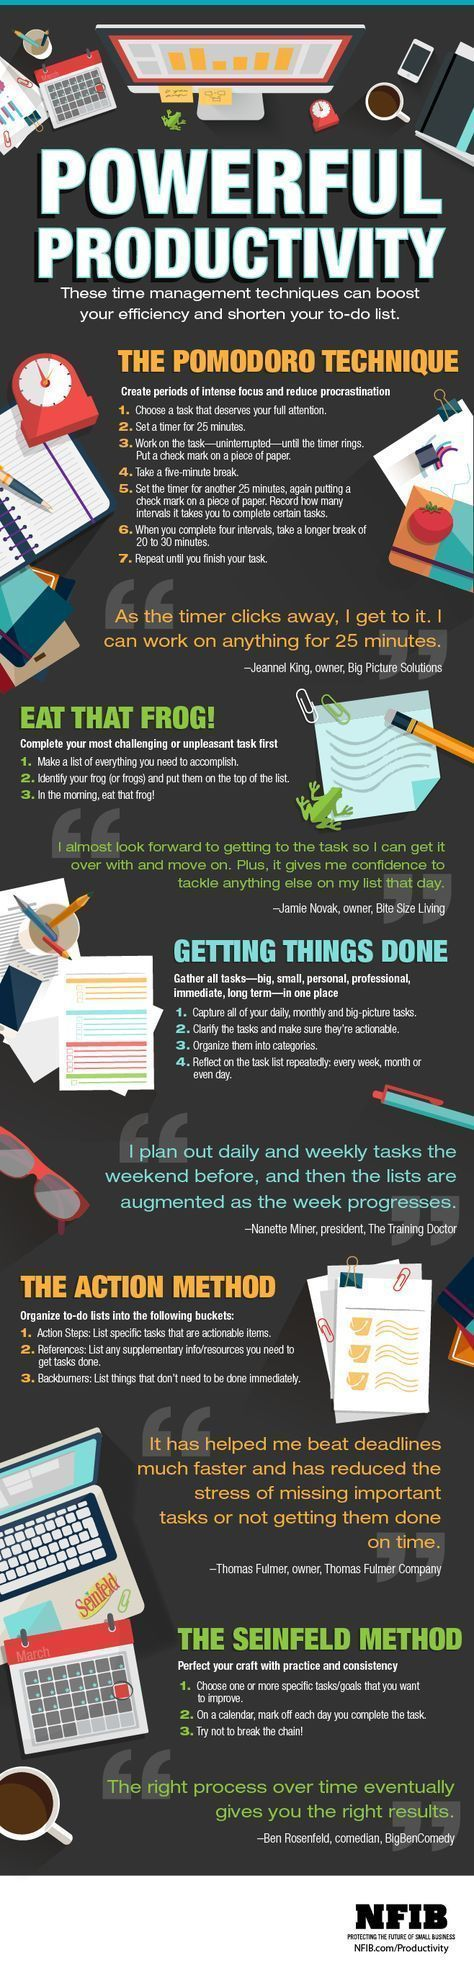 With so many distractions stealing our attention, most of us are looking for ways to be more efficient at work. Some entrepreneurs want higher work efficiency because they want to make time for more projects and additional opportunities. Others may... - Learn how I made it to 100K in one months with e-commerce!